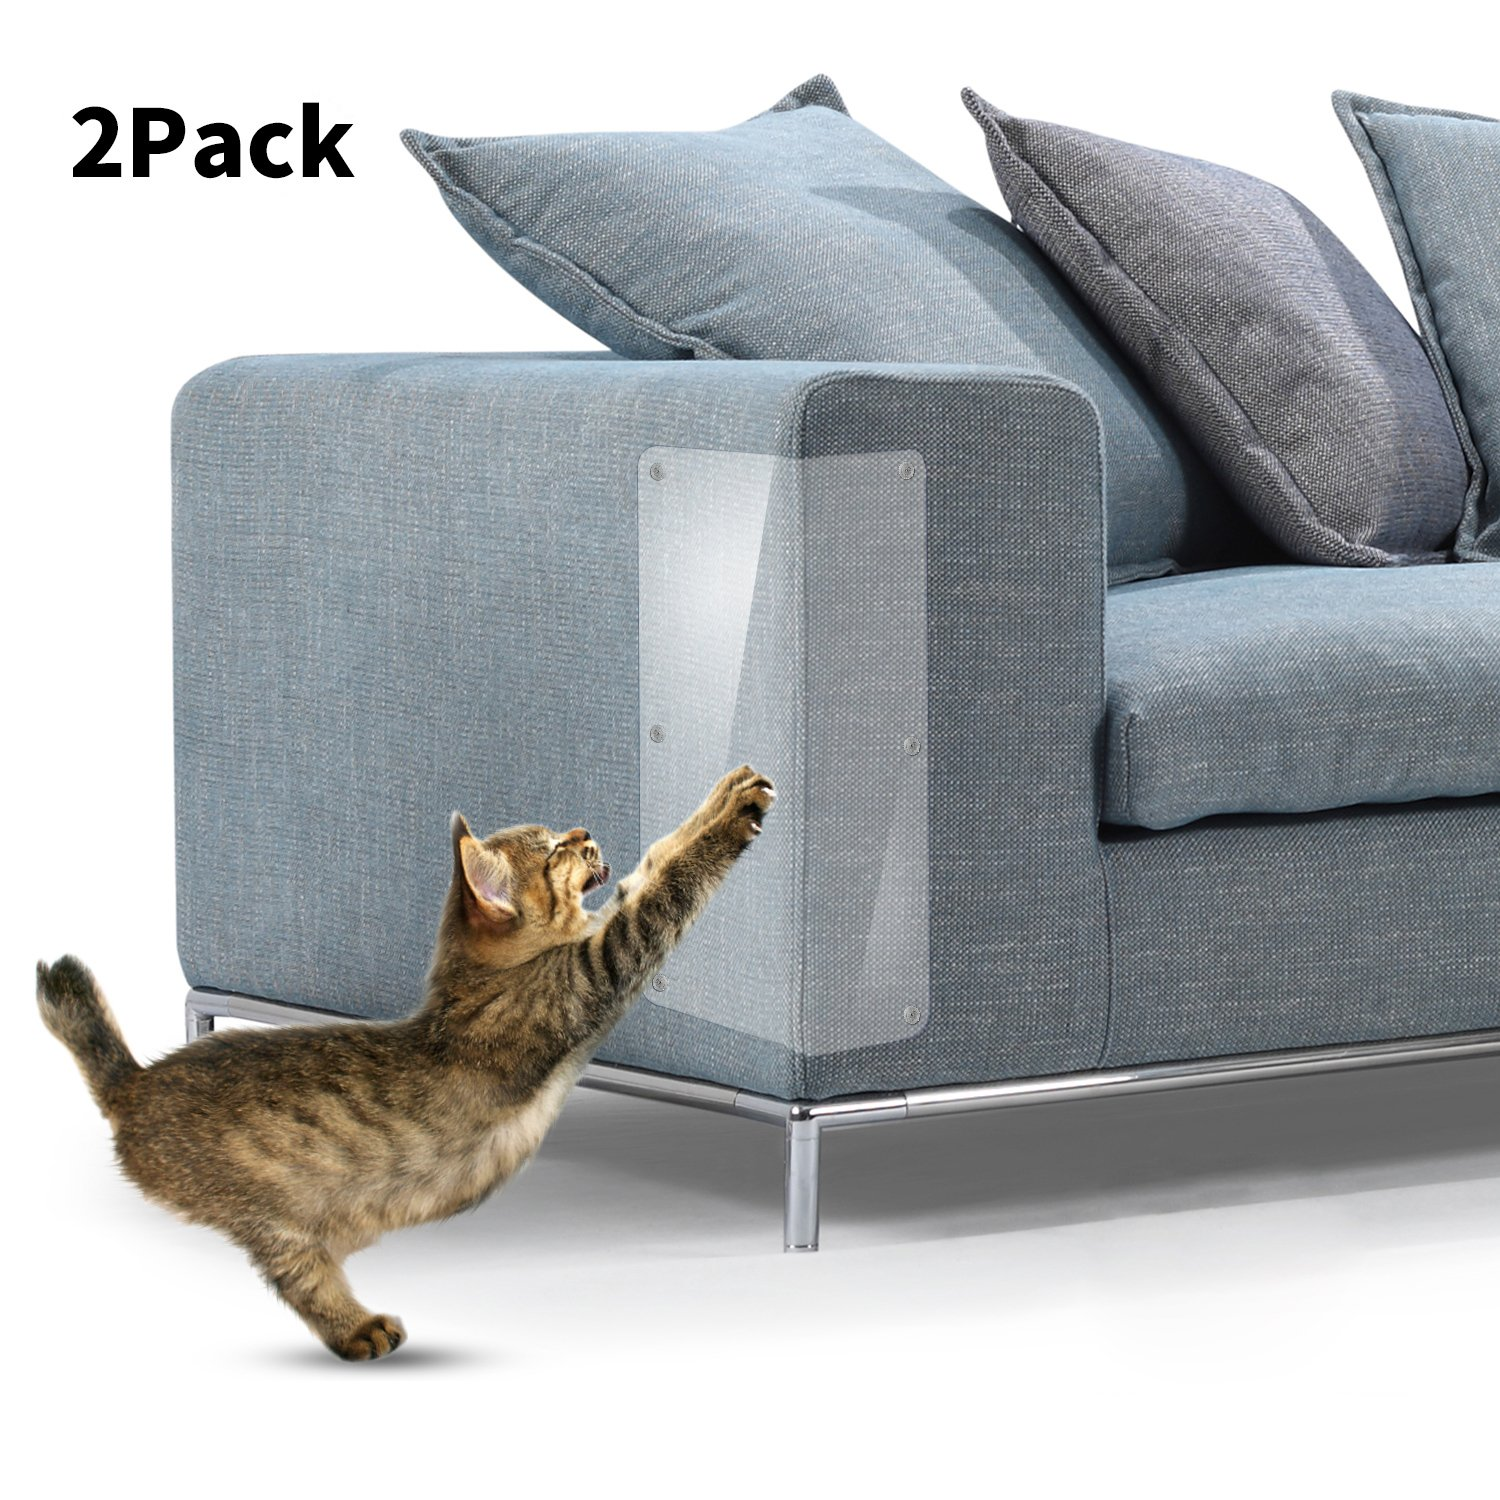 IN HAND Cat Scratch Furniture, Clear Premium Heavy Duty Flexible Vinyl Protector Dog Cat Claw Guards with Pins for Protecting Your Upholstered Furniture, Stops Scratching Cats Furniture Protector, Set